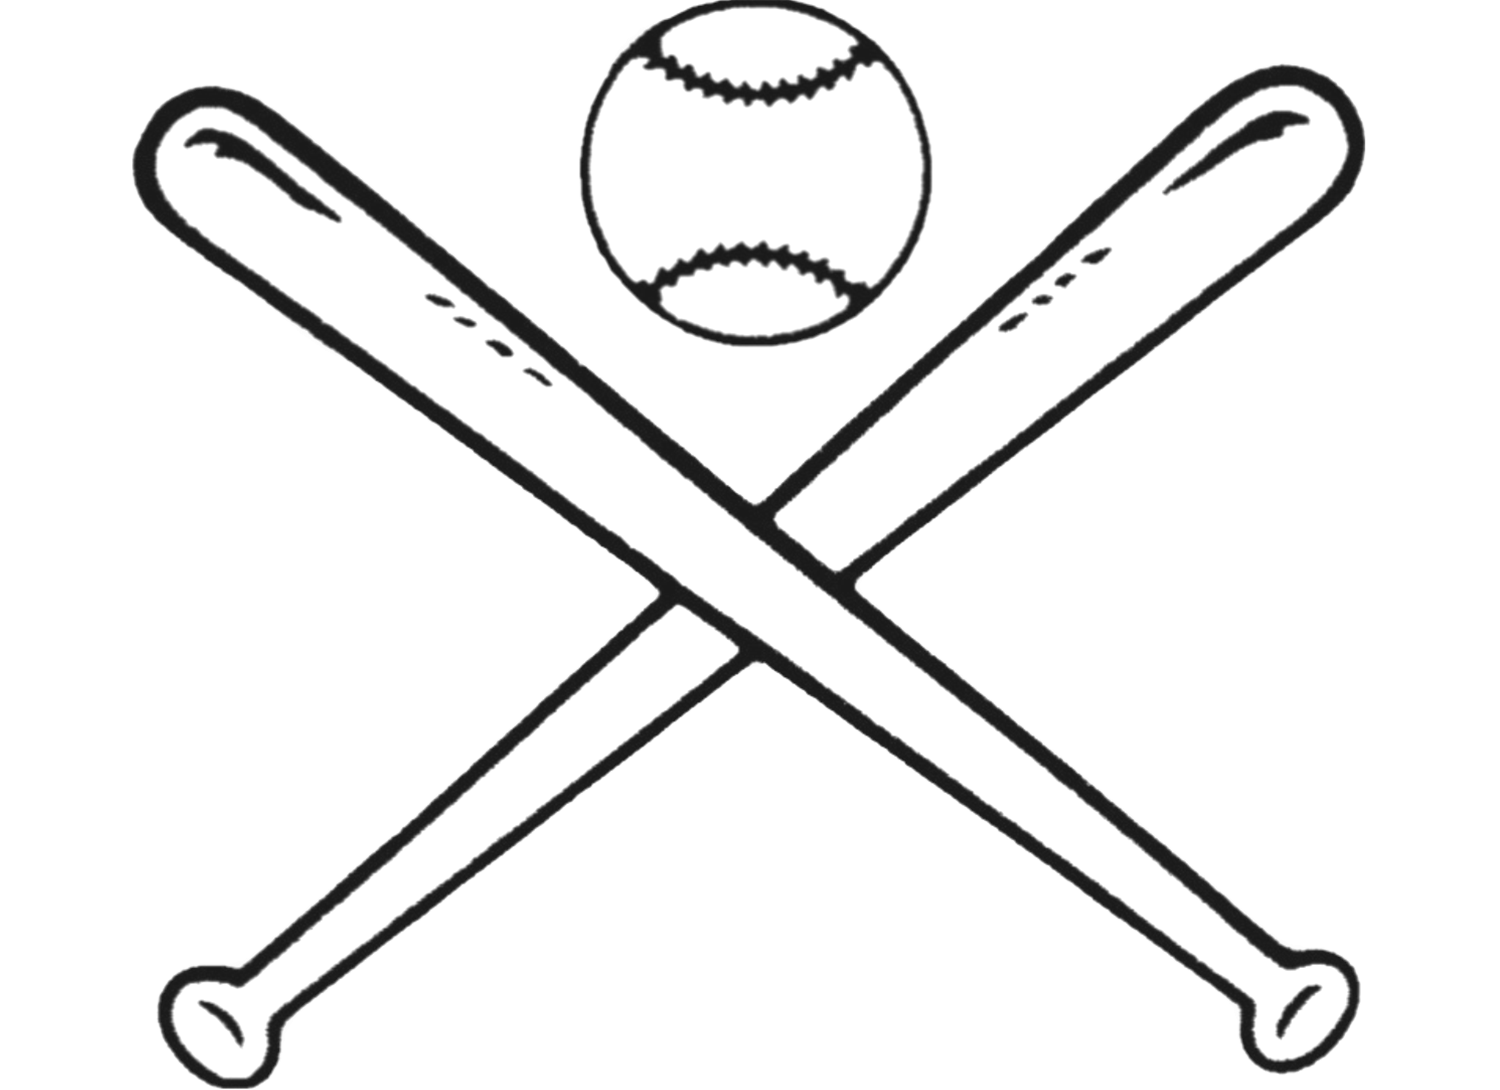 Baseball bats clipart png library library Baseball Bats Drawing Bat-and-ball games Clip art - sticks 1500*1090 ... png library library